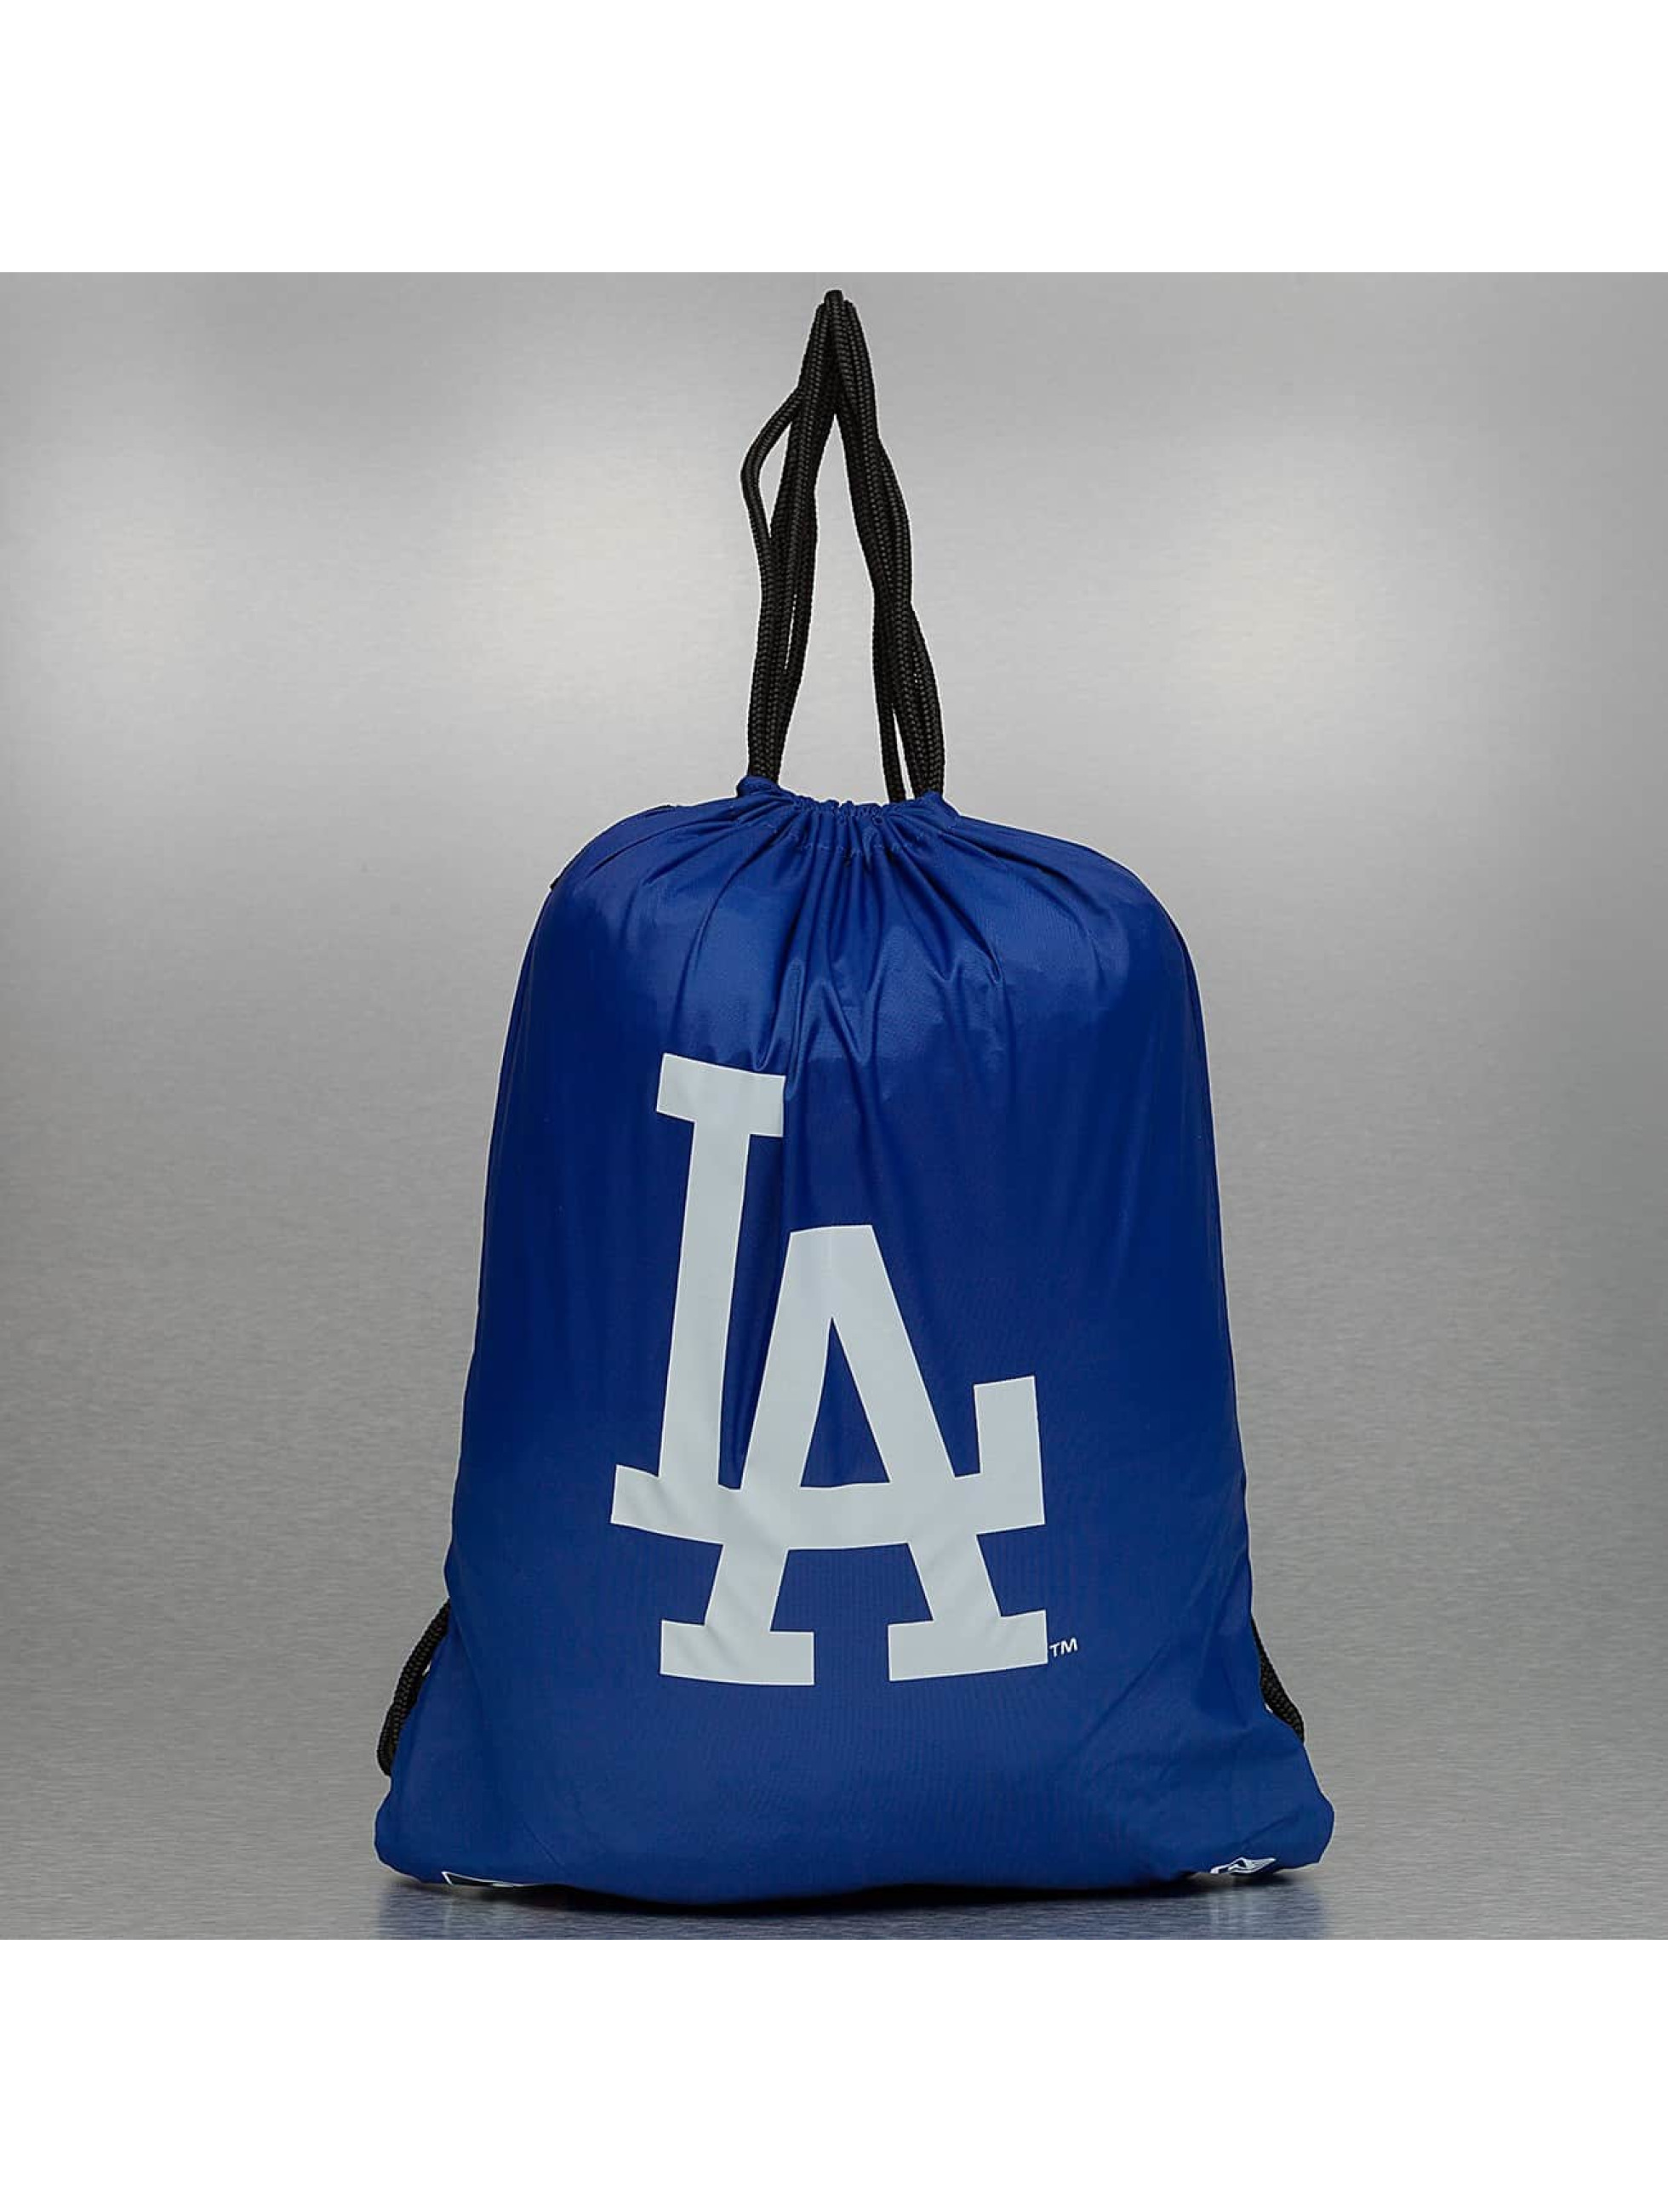 New Era Männer,Frauen Beutel MLB LA Dodgers in blau